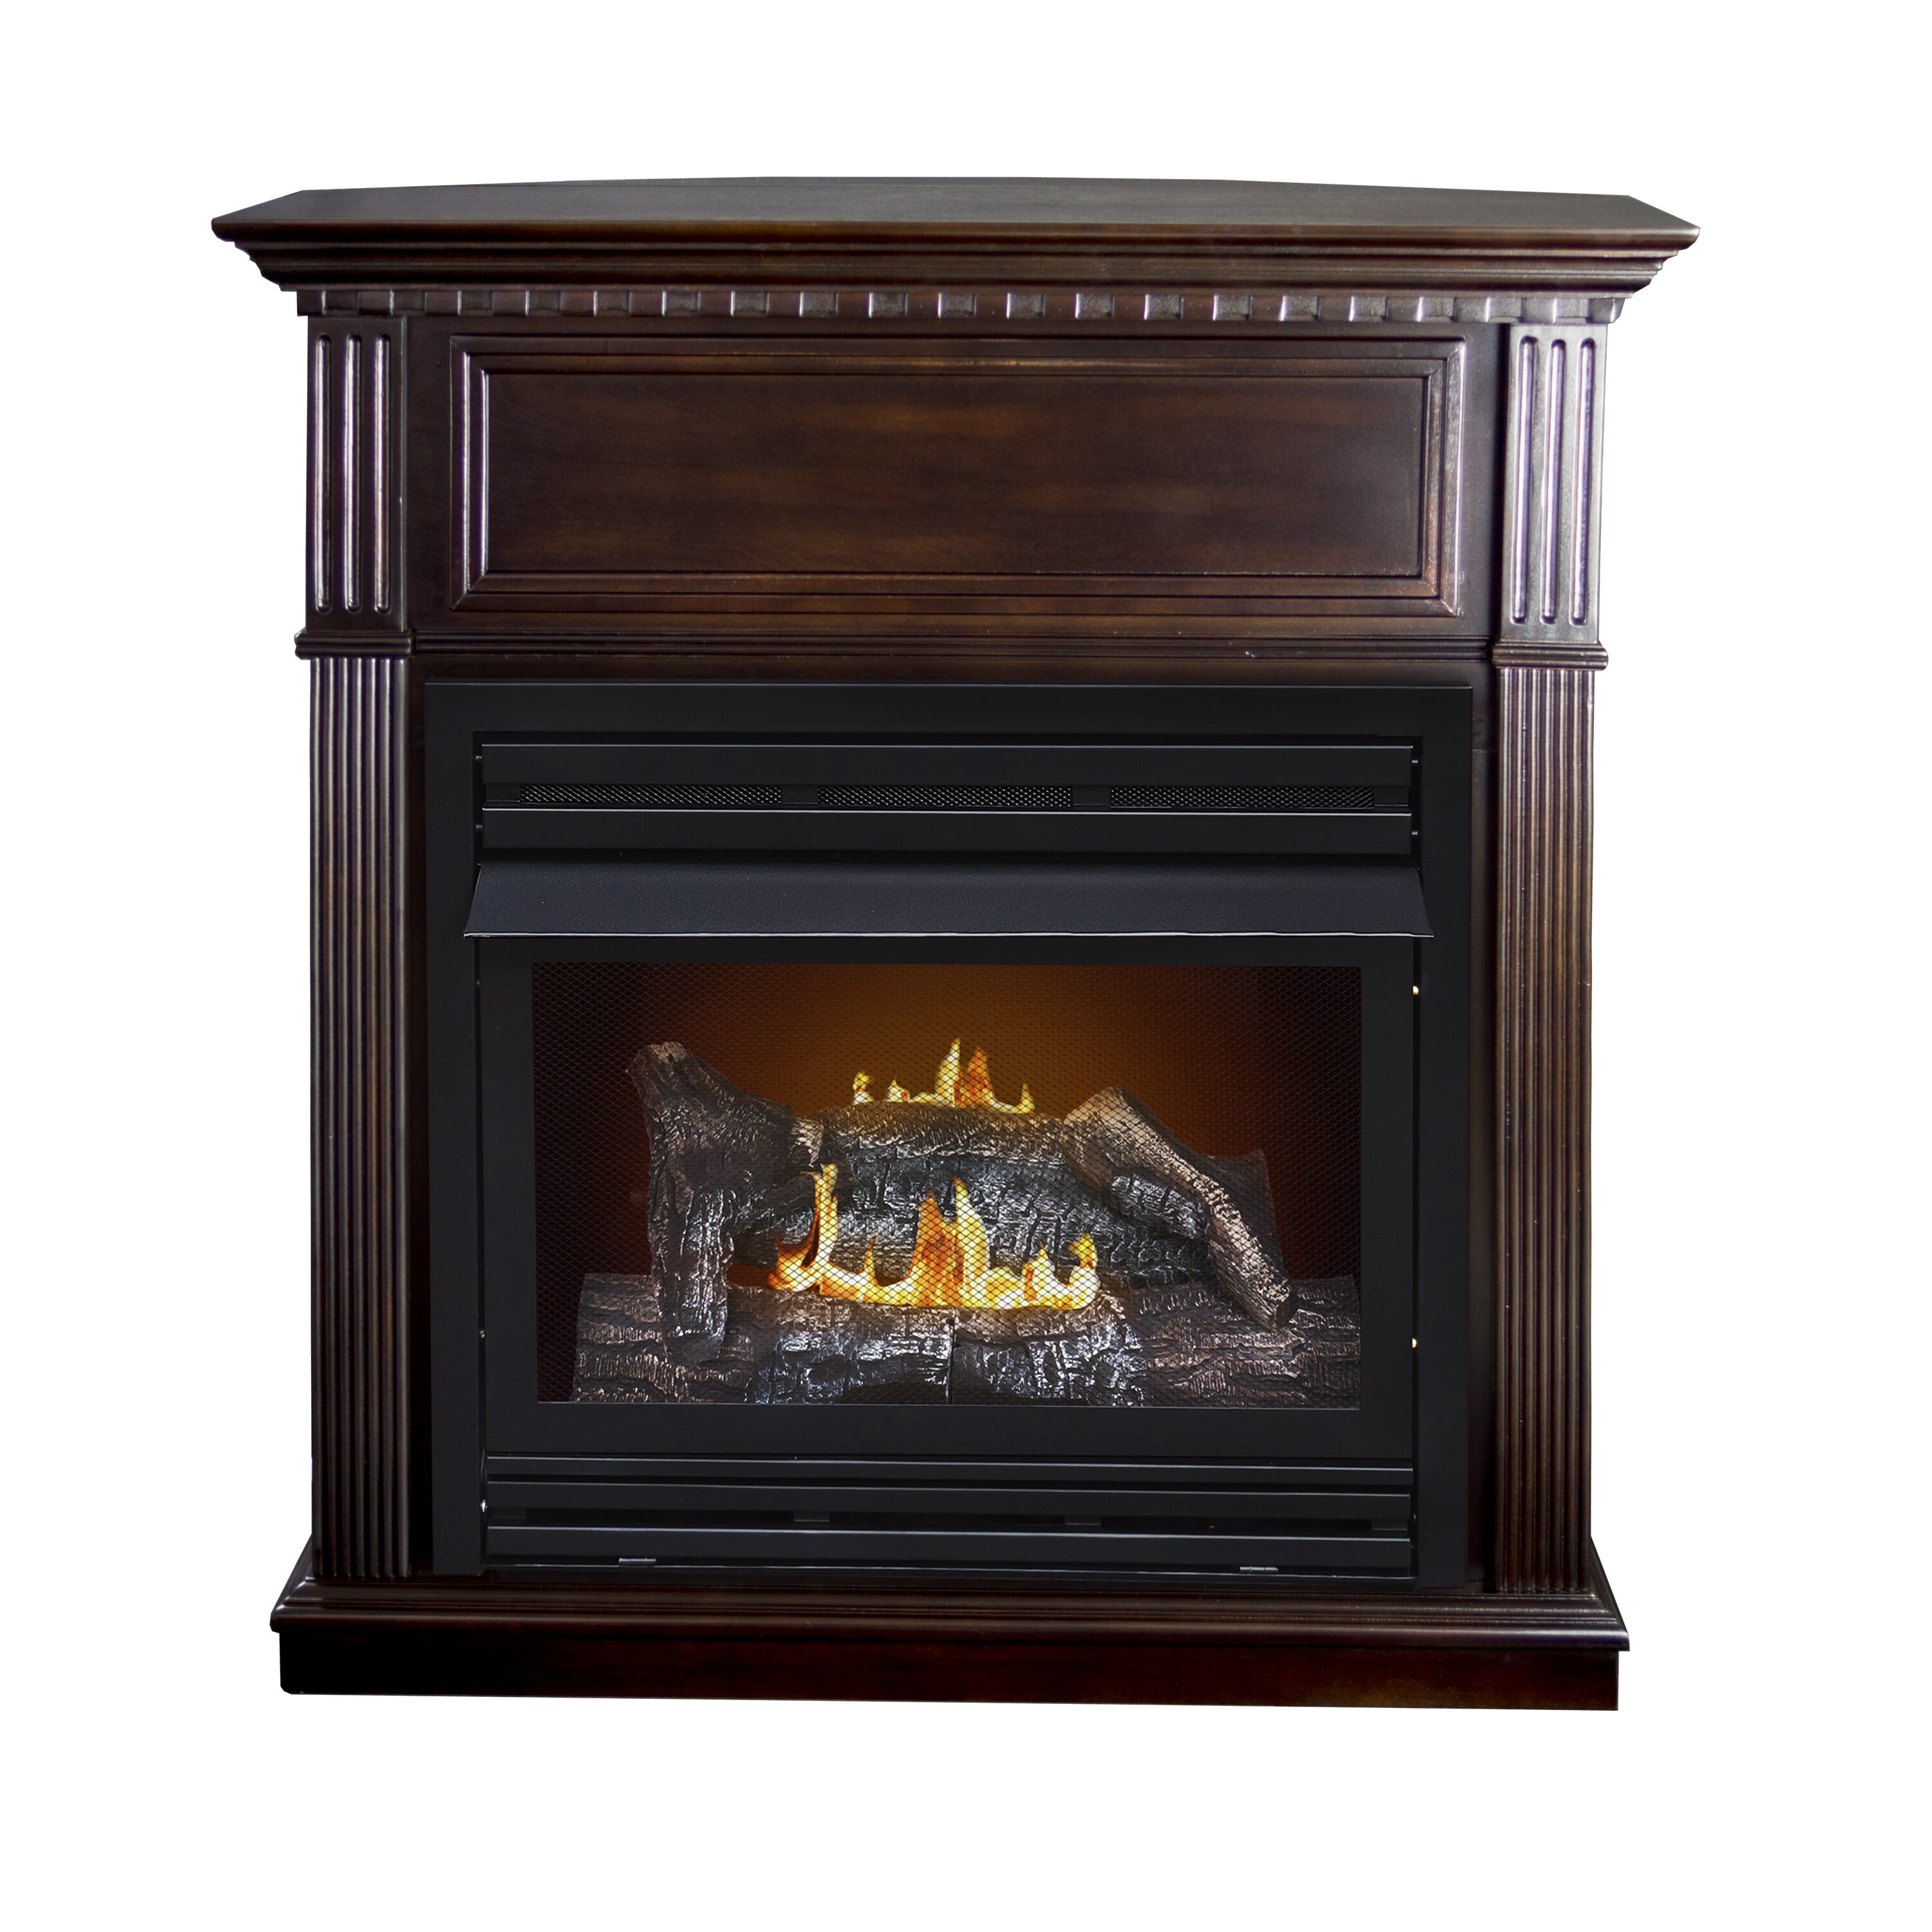 Pleasant Hearth Intermediate Vent Free Dual Fuel Natural Gas Fireplace Reviews Wayfair